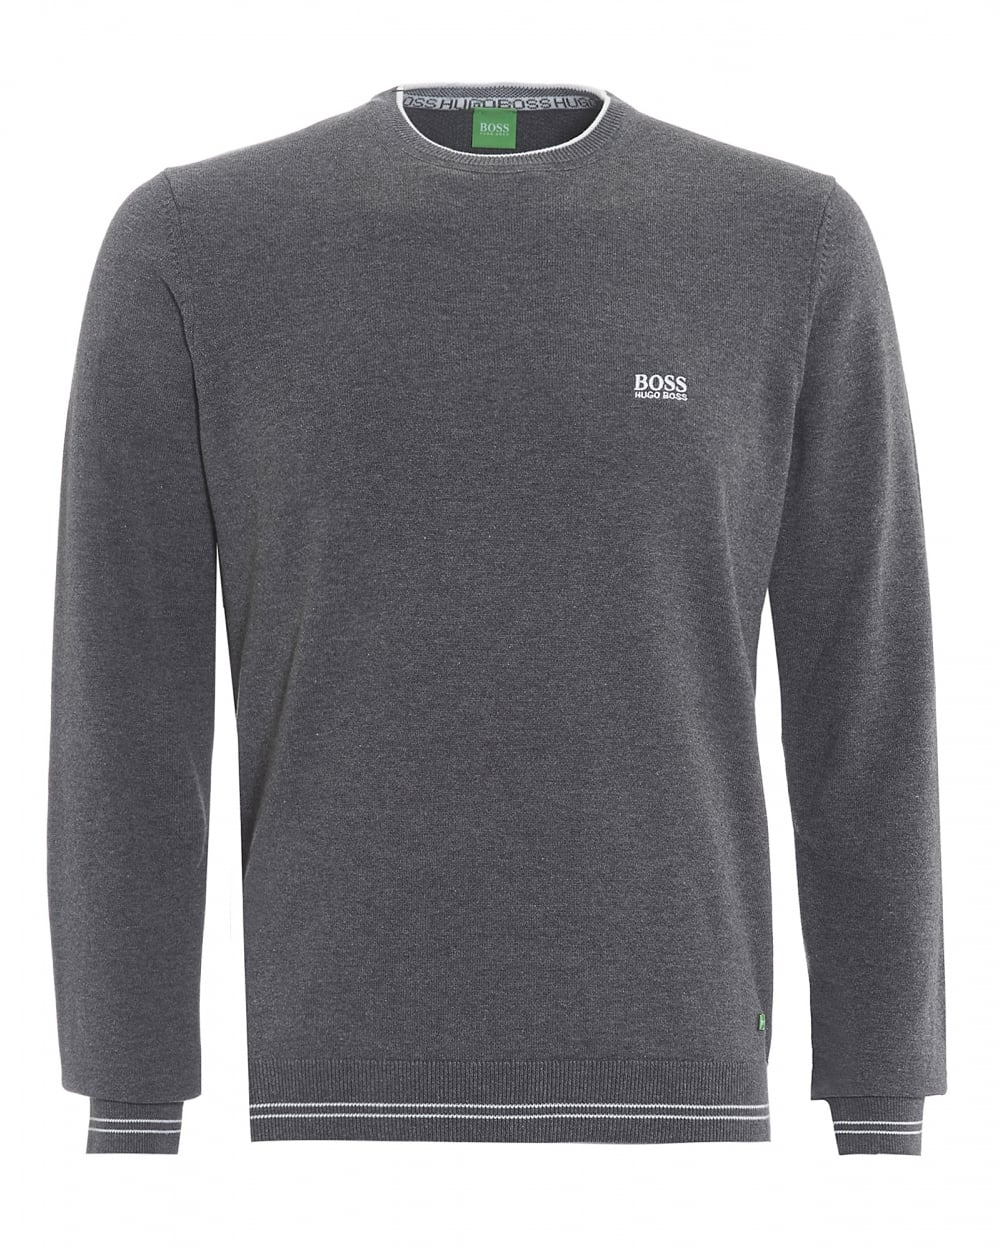 Mens Rime Sweatshirt, Piped Crew Neck Grey Logo Jumper